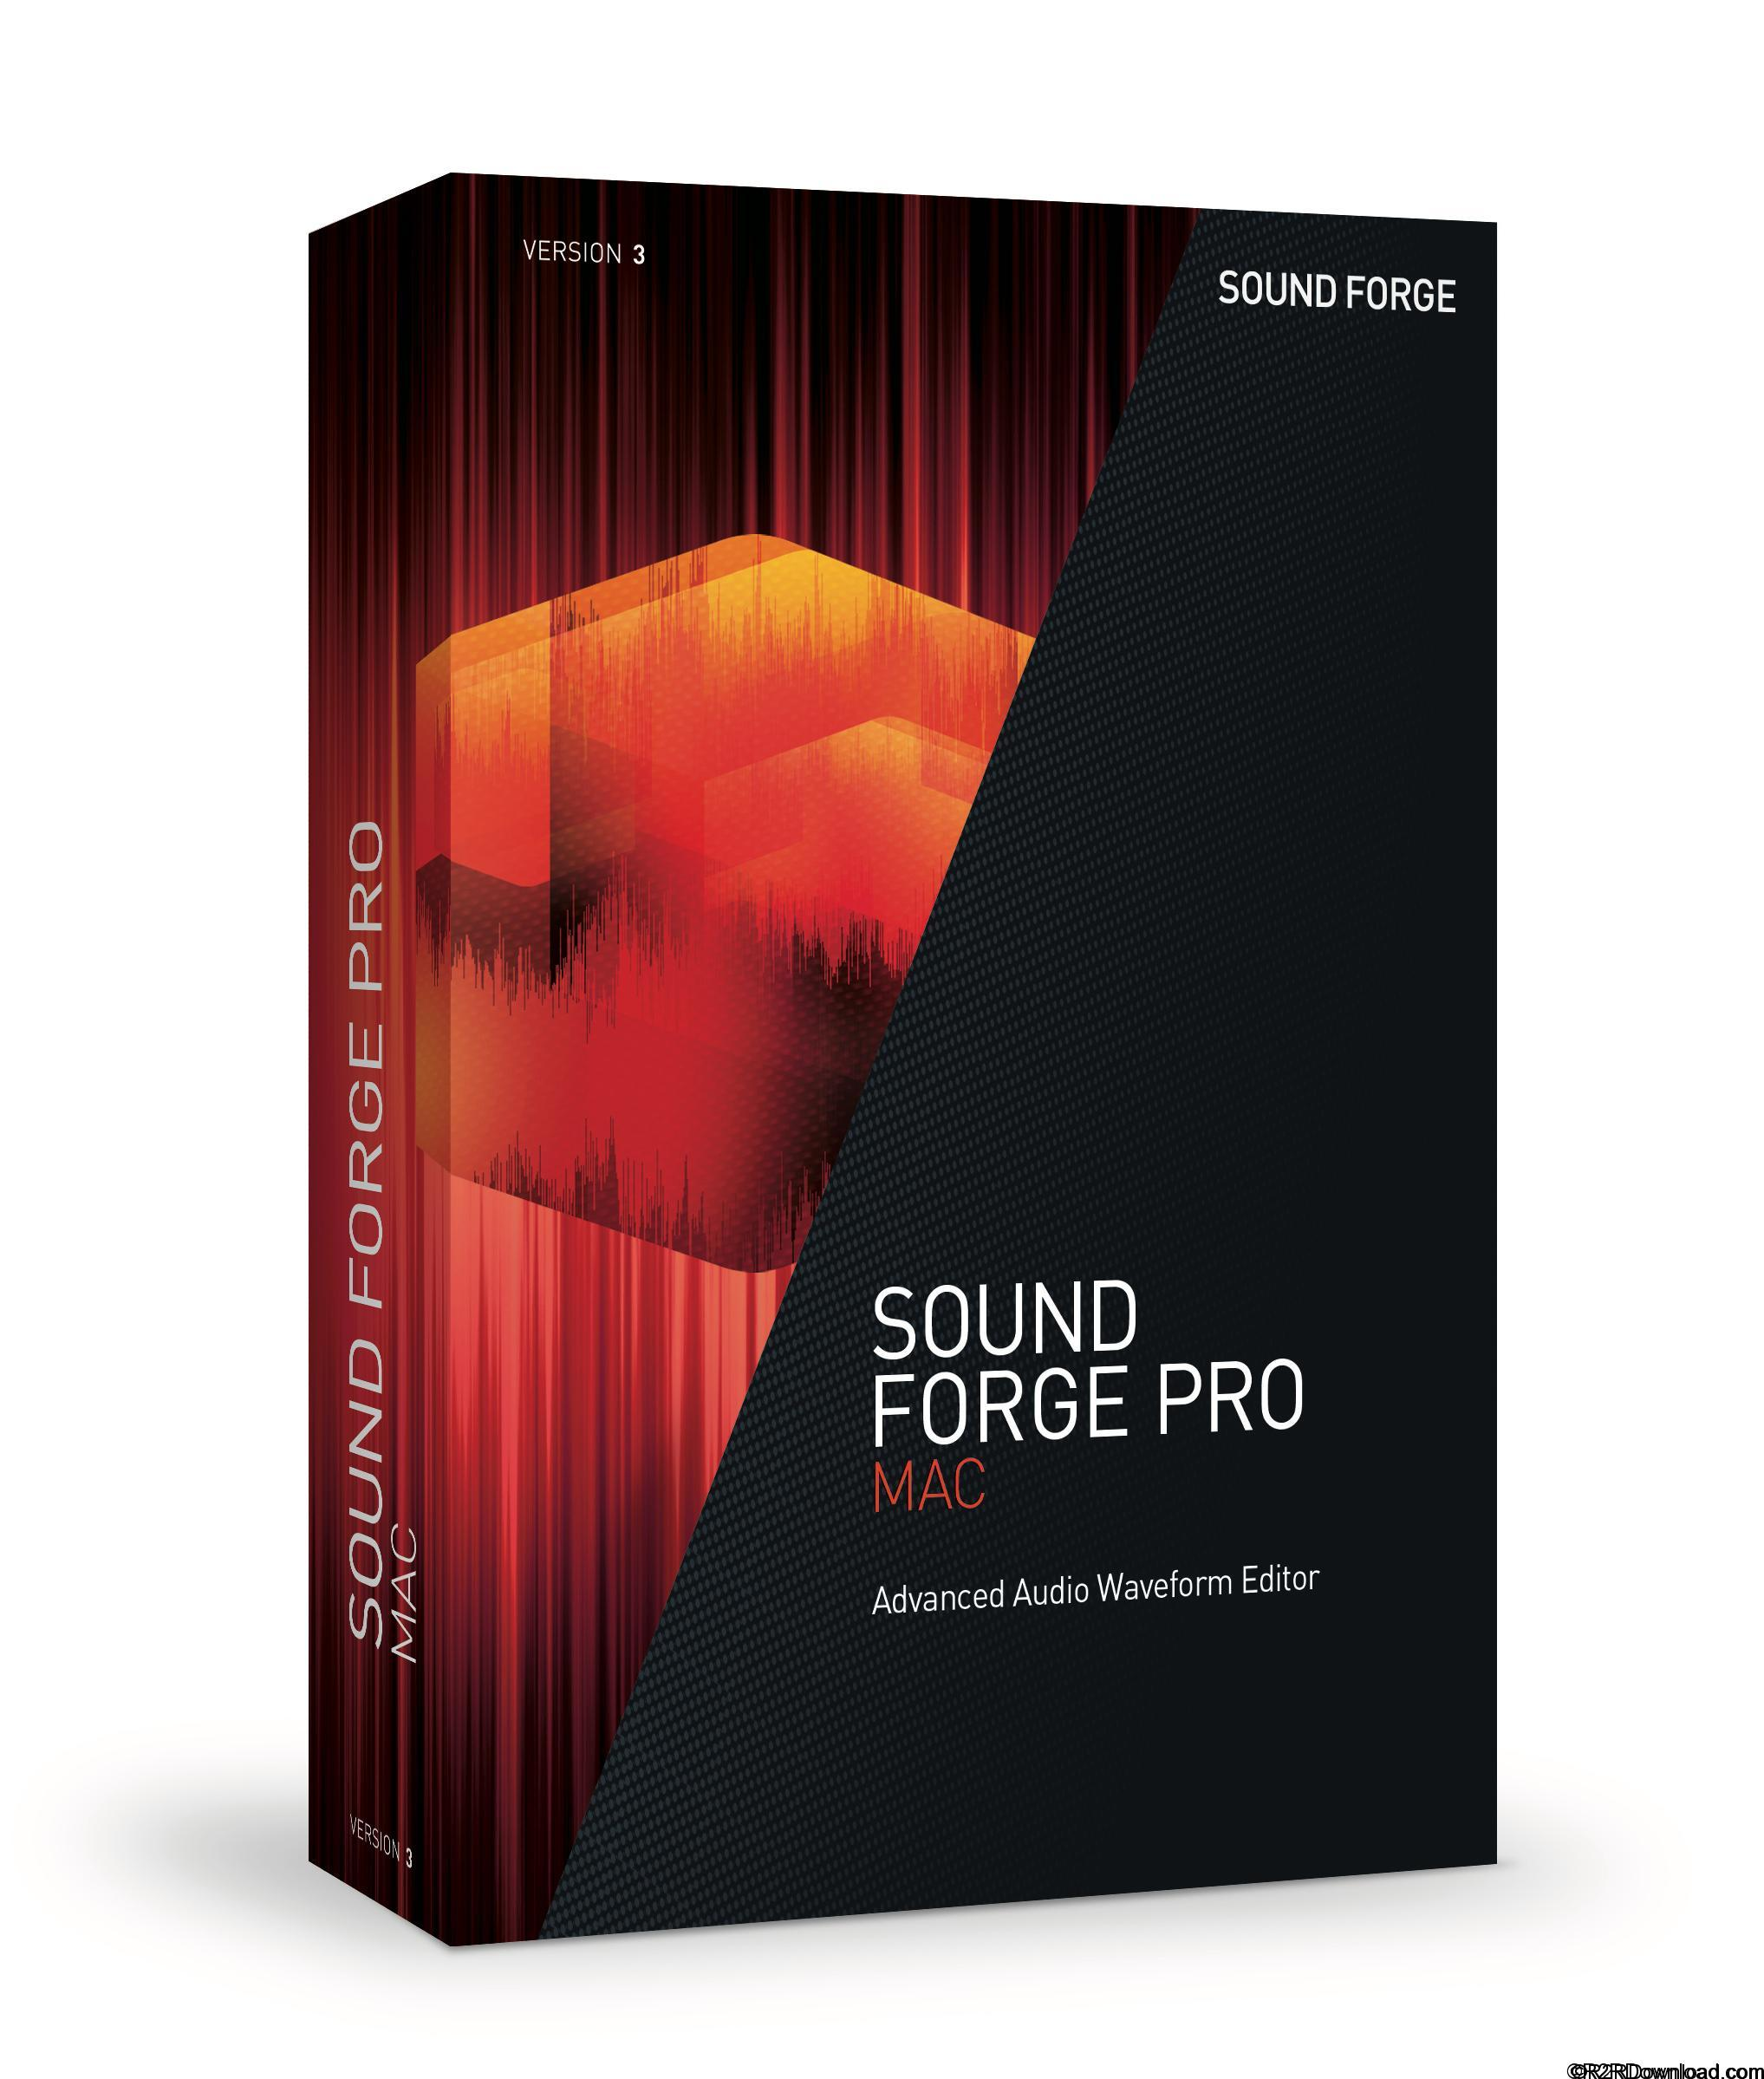 Sound Forge Pro 3 Mac Free Download